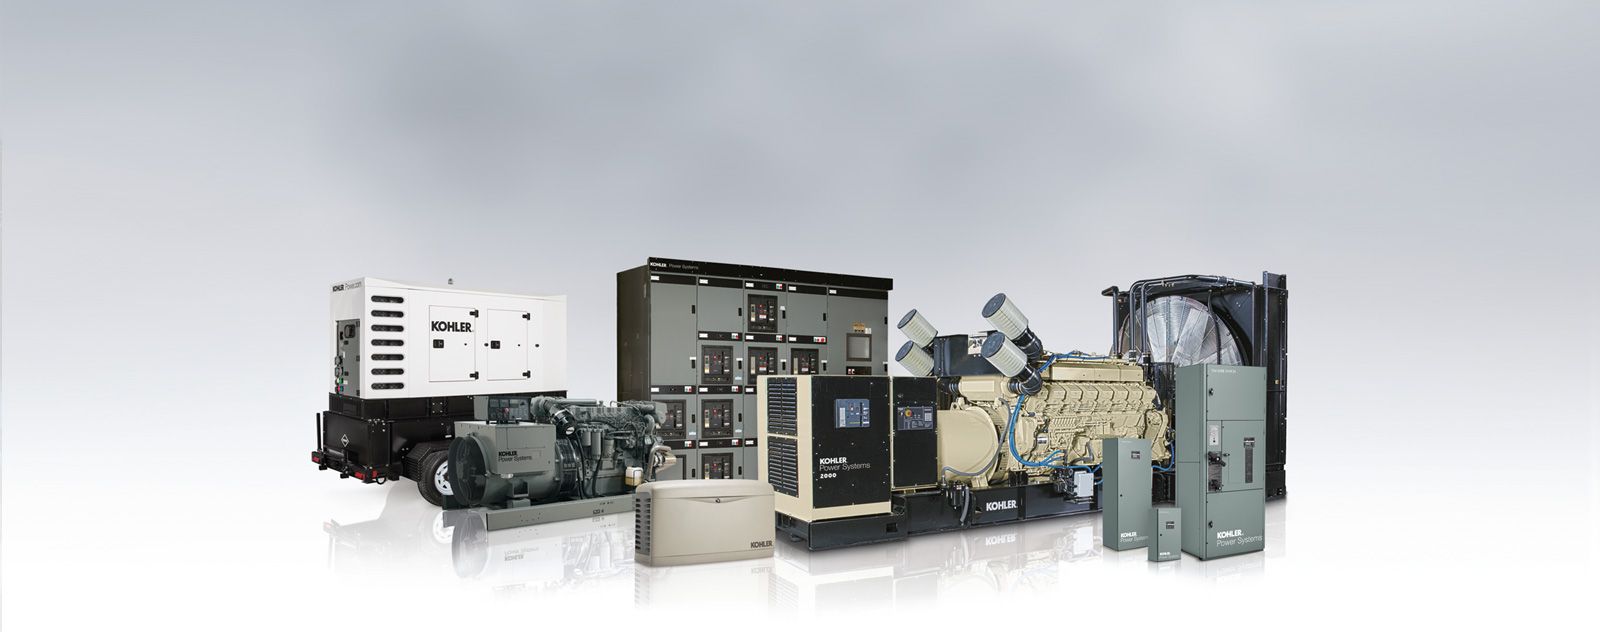 Kohler Generator Products Taw Power Systems